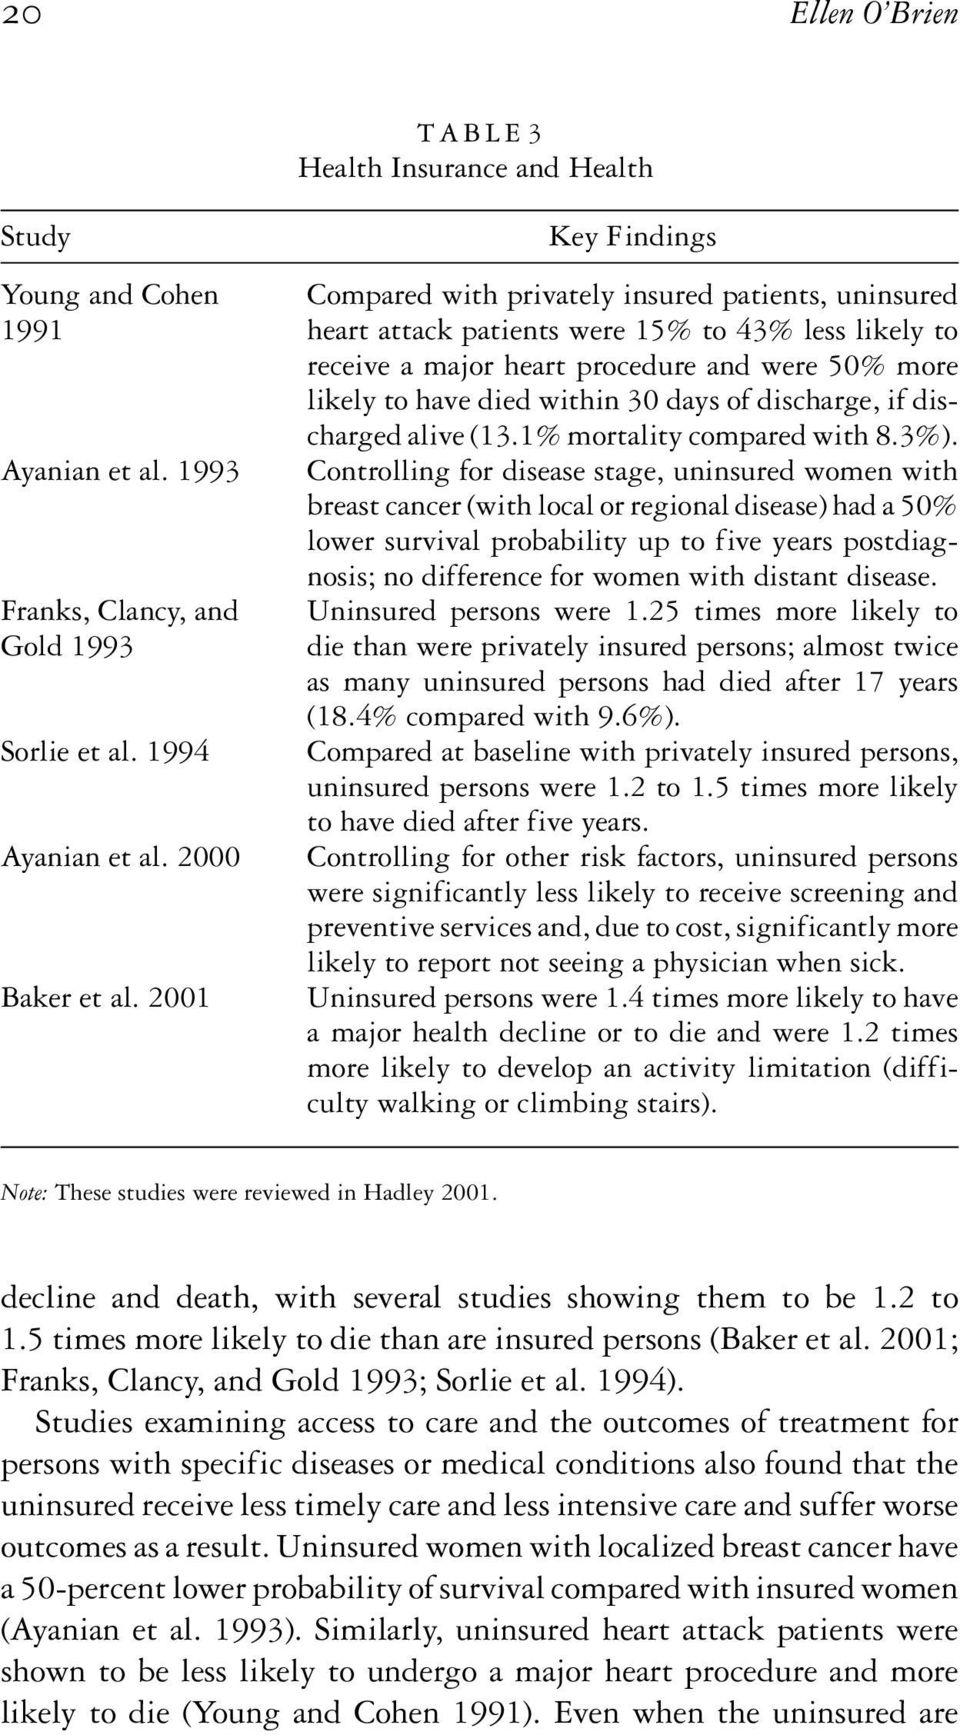 30 days of discharge, if discharged alive (13.1% mortality compared with 8.3%).